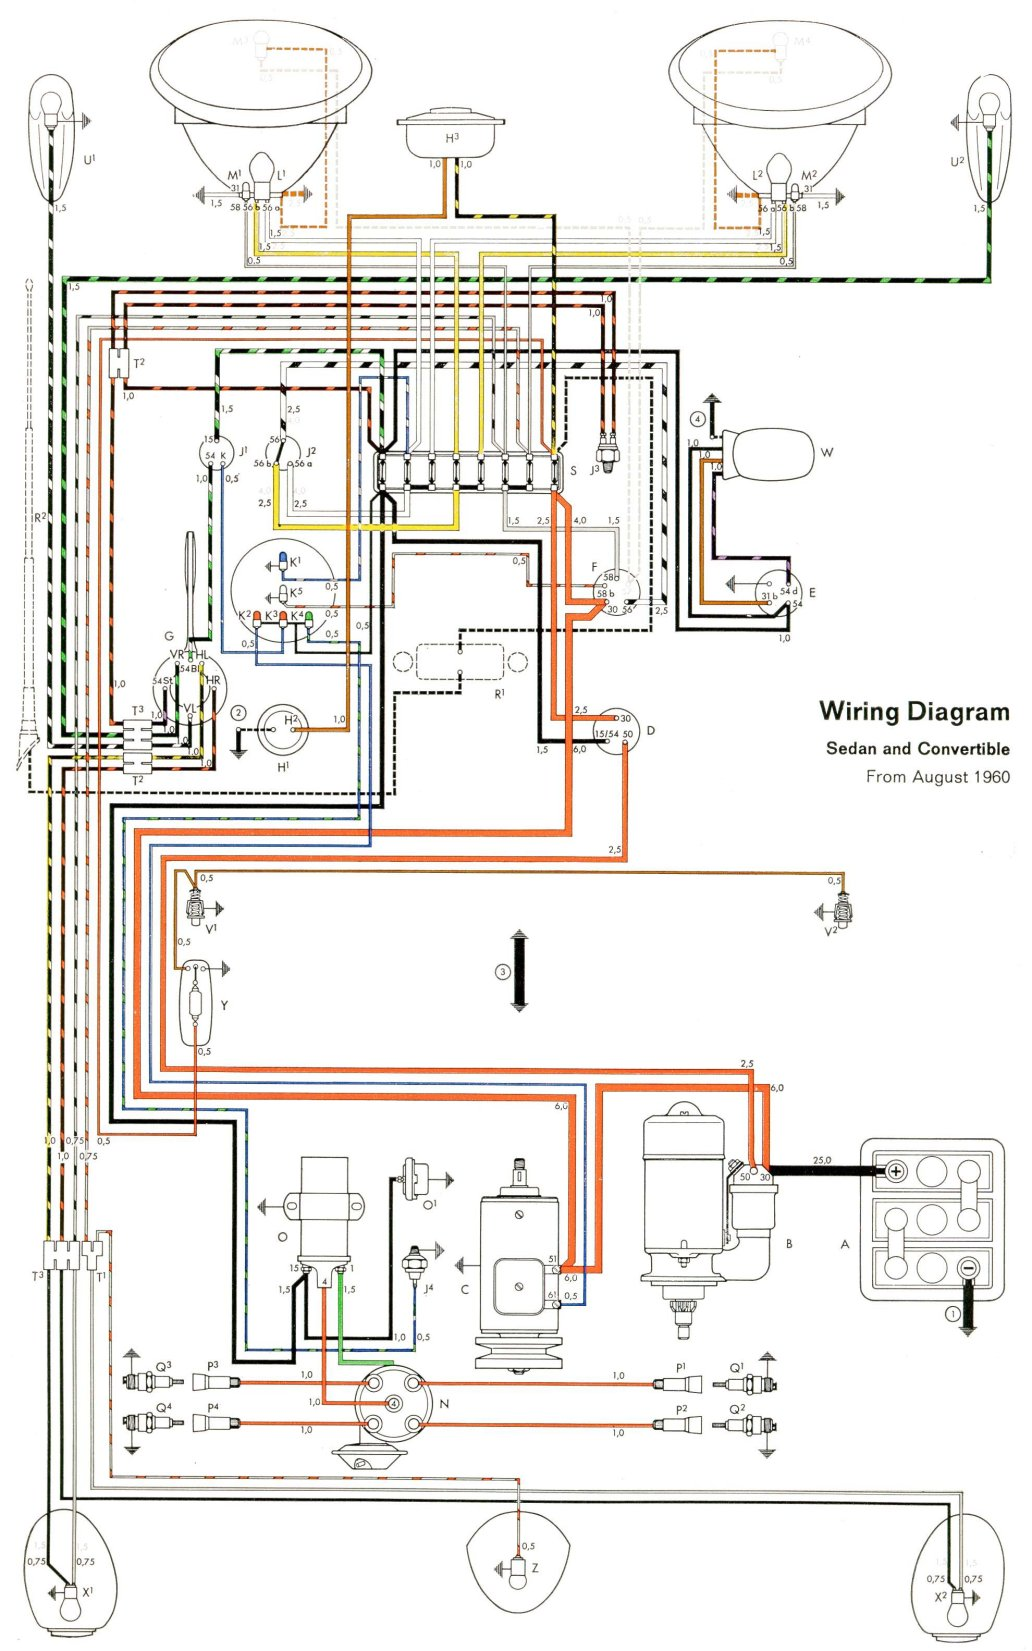 1974 vw bug wiring diagram 17 9 ulrich temme de \u2022thesamba com type 1 wiring diagrams rh thesamba com 1974 vw beetle ignition wiring diagram 1974